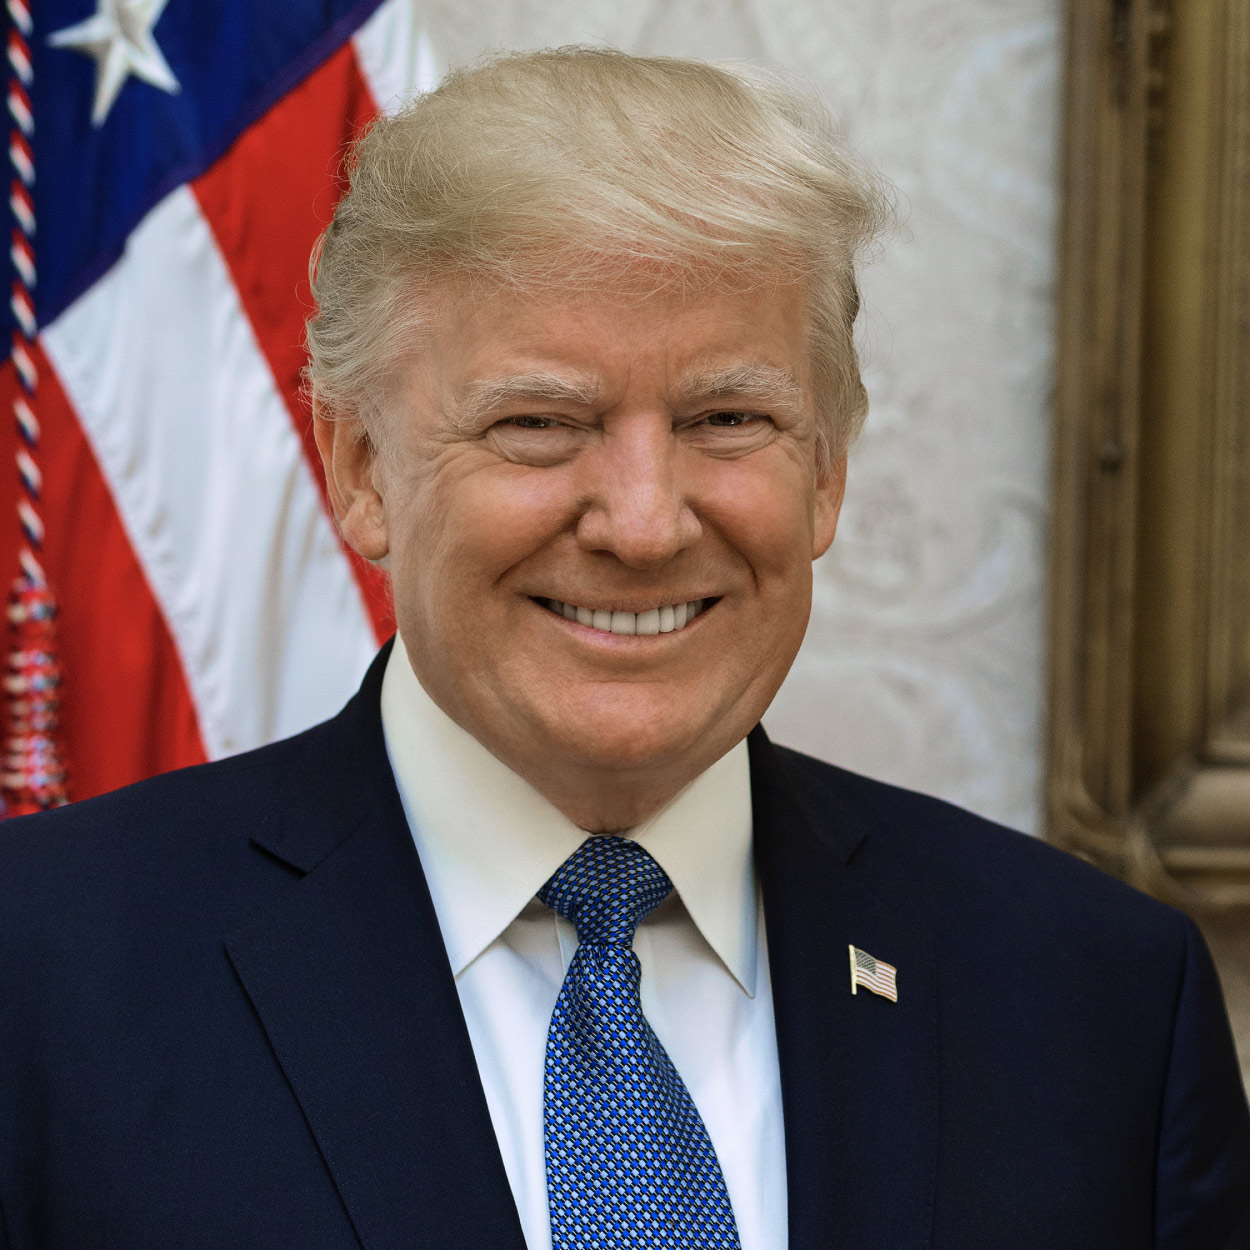 Portrait of Donald J. Trump, the 45th President of the United States